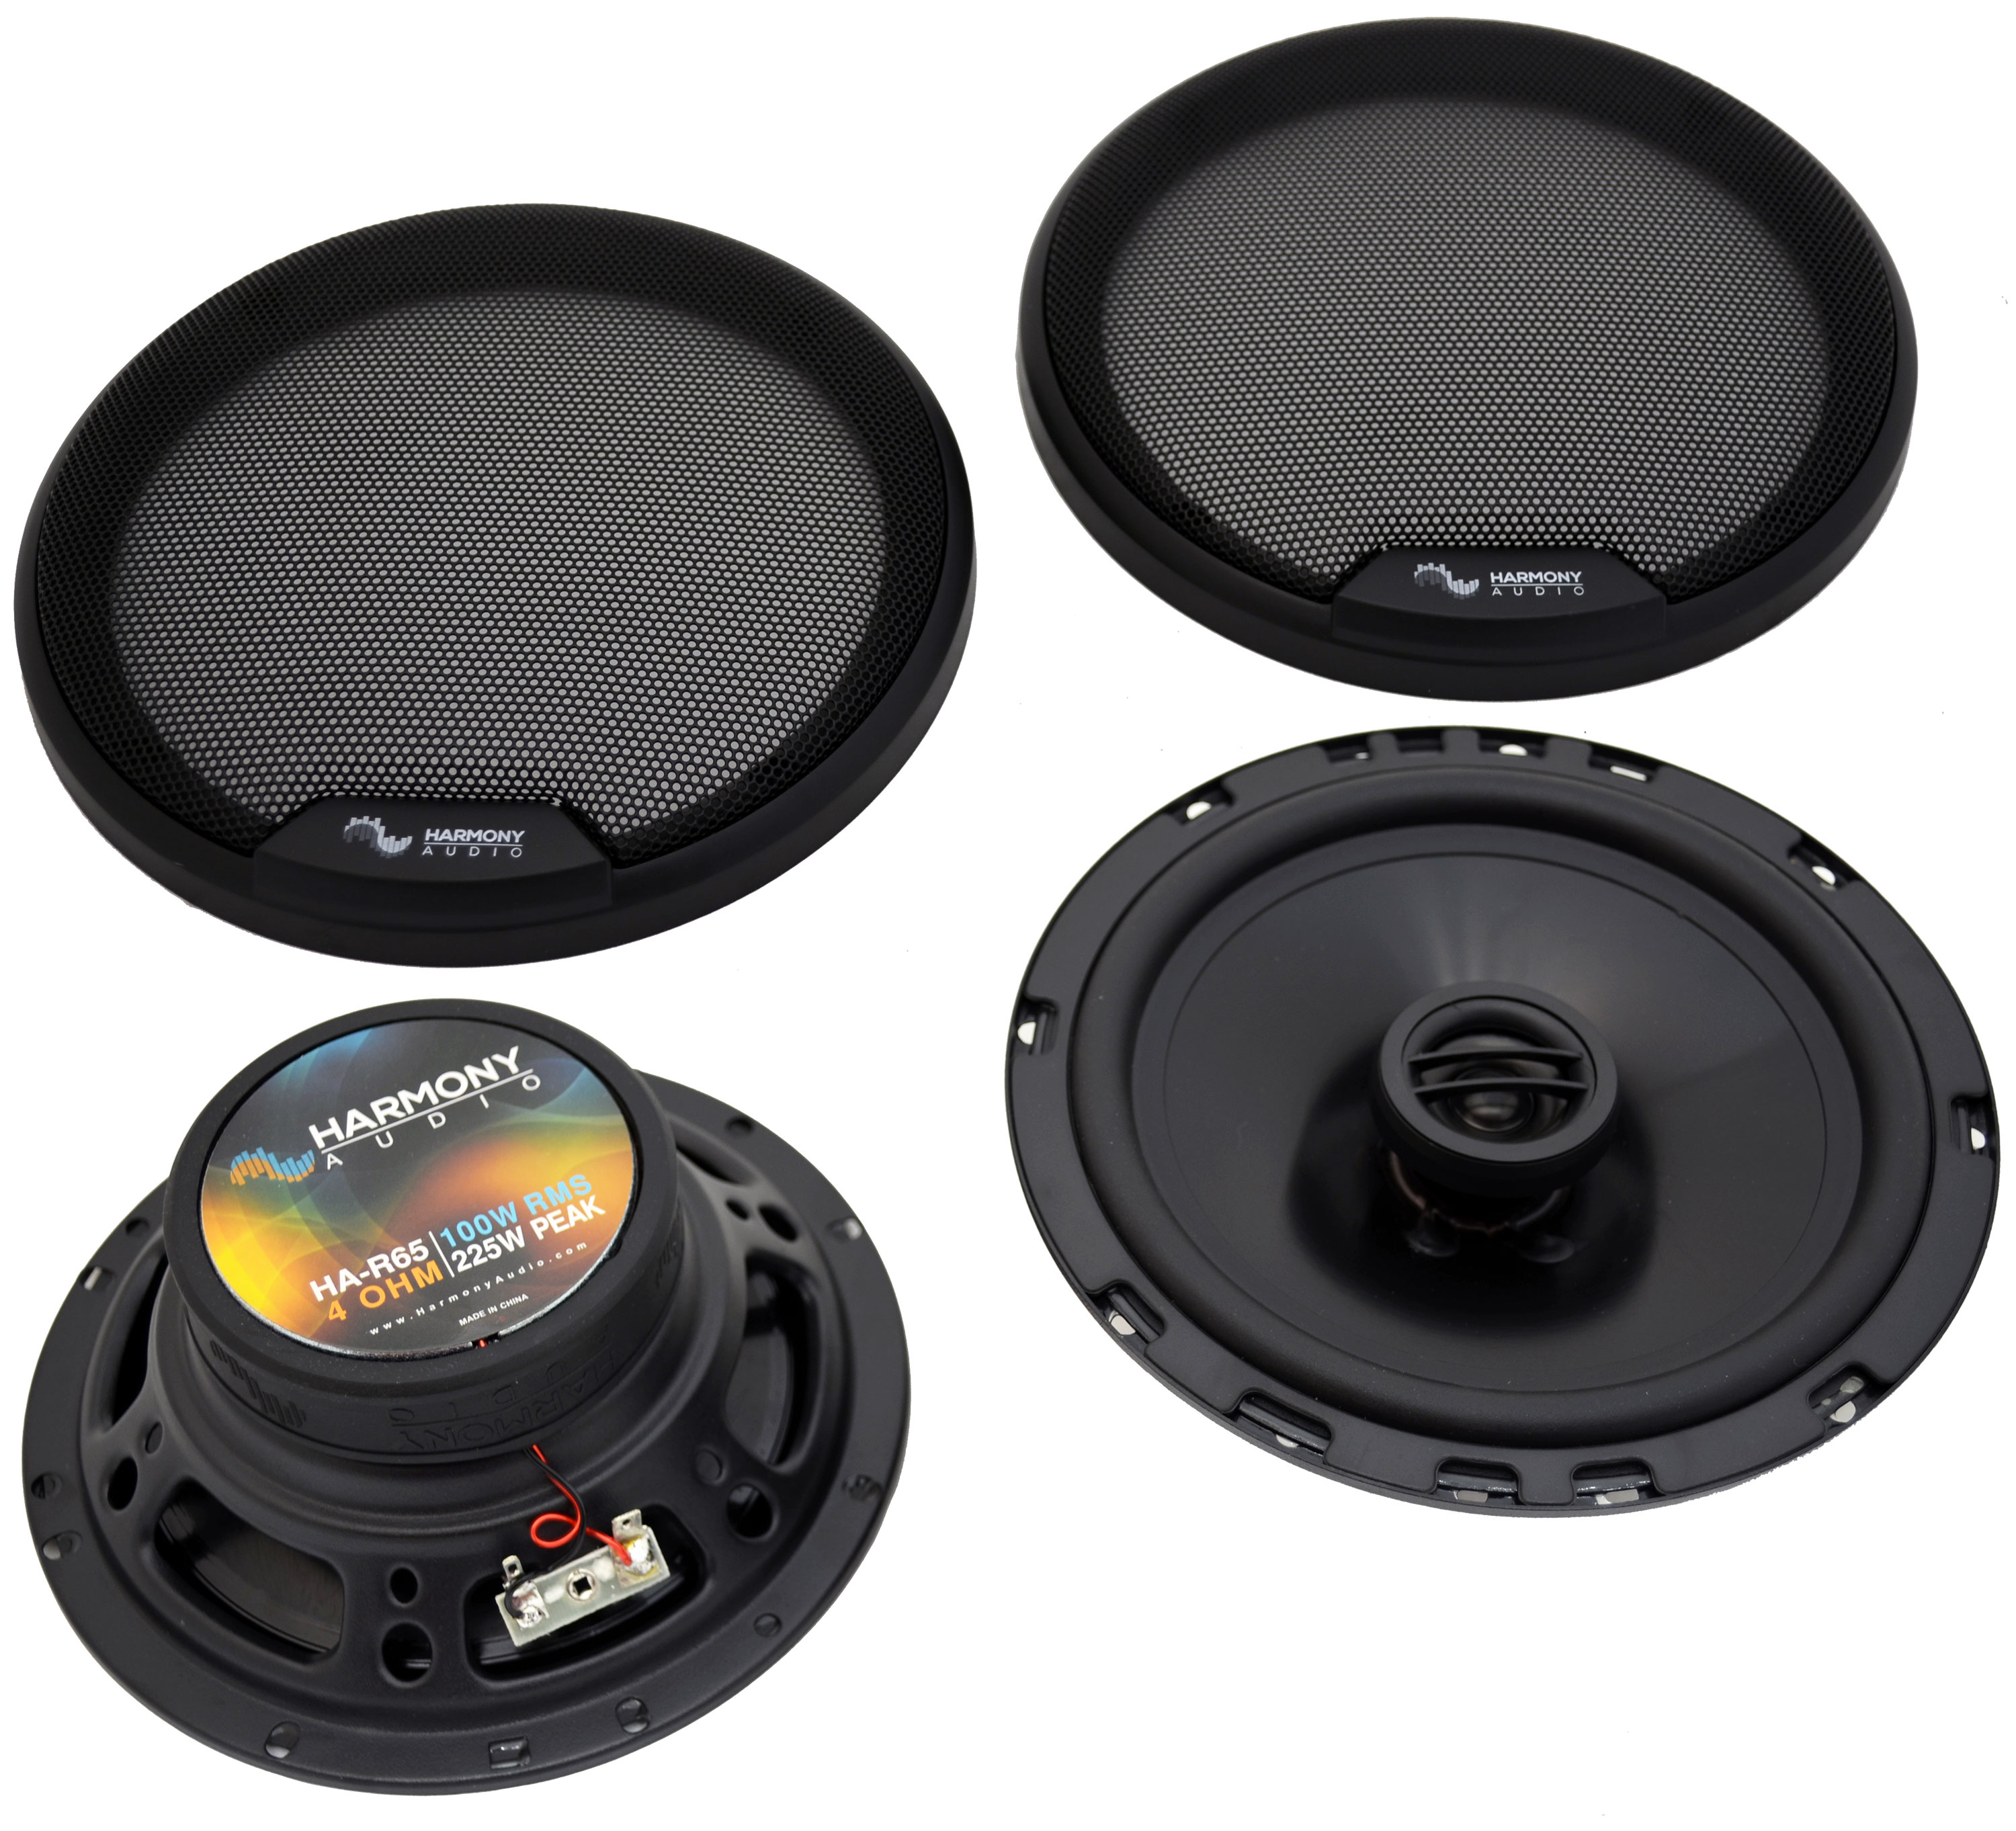 Fits Mercedes 500 Series 1995-1996 Rear Deck Replacement Harmony HA-R65 Speakers